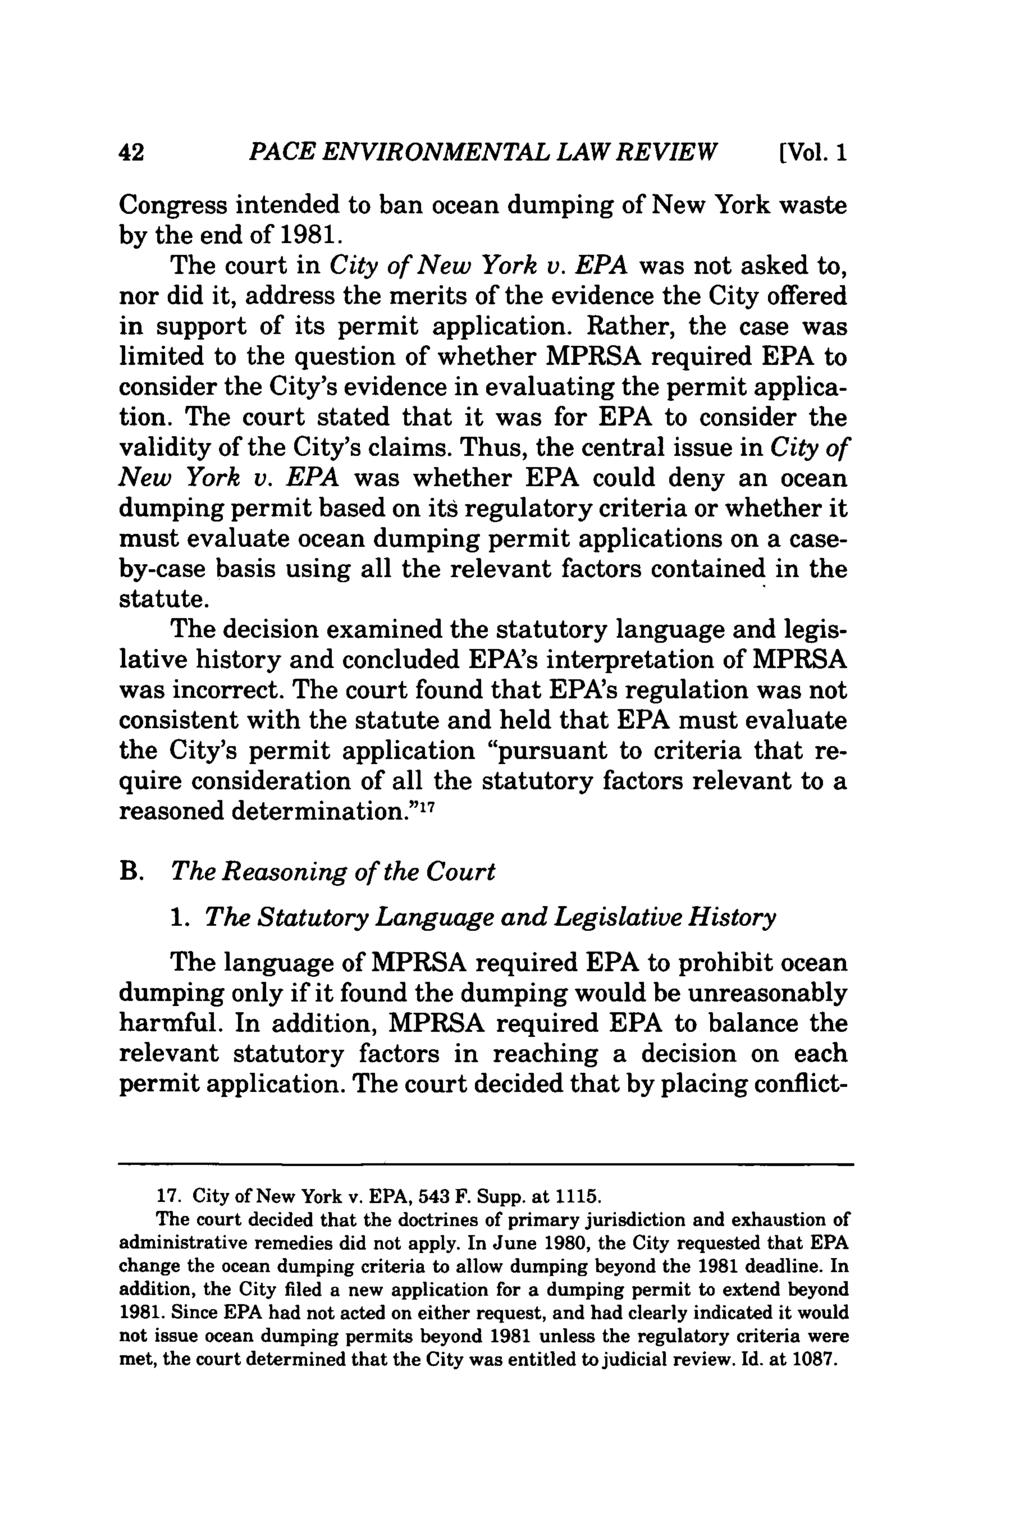 PACE ENVIRONMENTAL LAW REVIEW (Vol. 1 Congress intended to ban ocean dumping of New York waste by the end of 1981. The court in City of New York v.